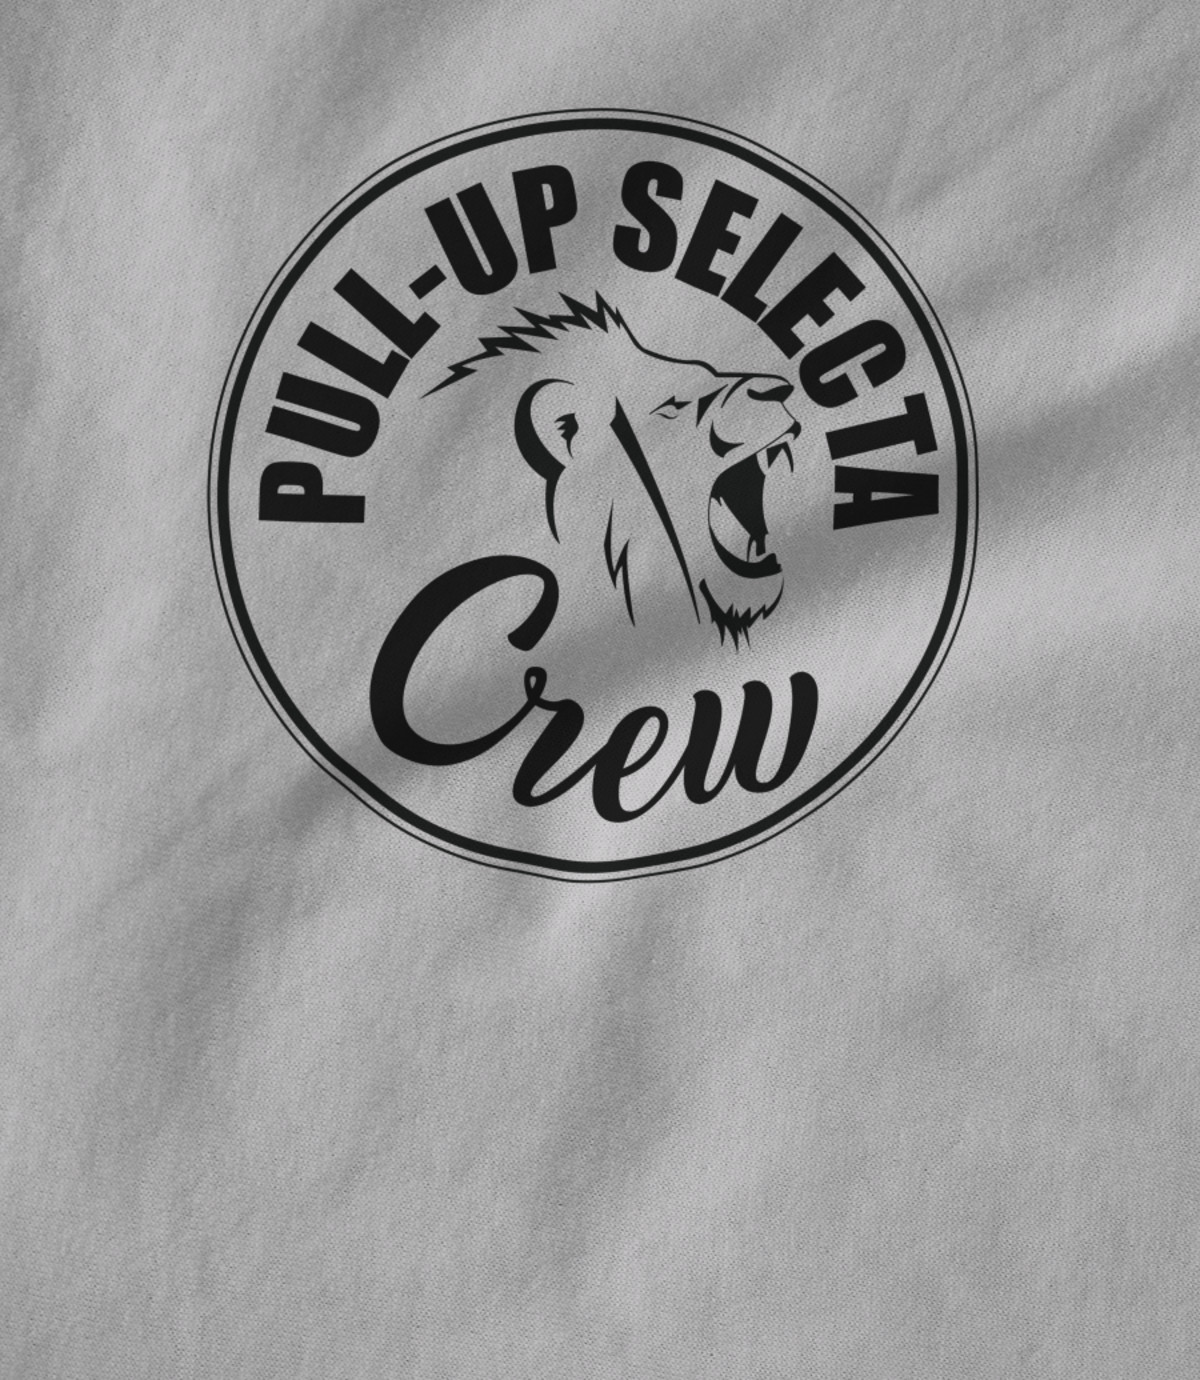 Pull up selecta pull up selecta crew  white  1549132319